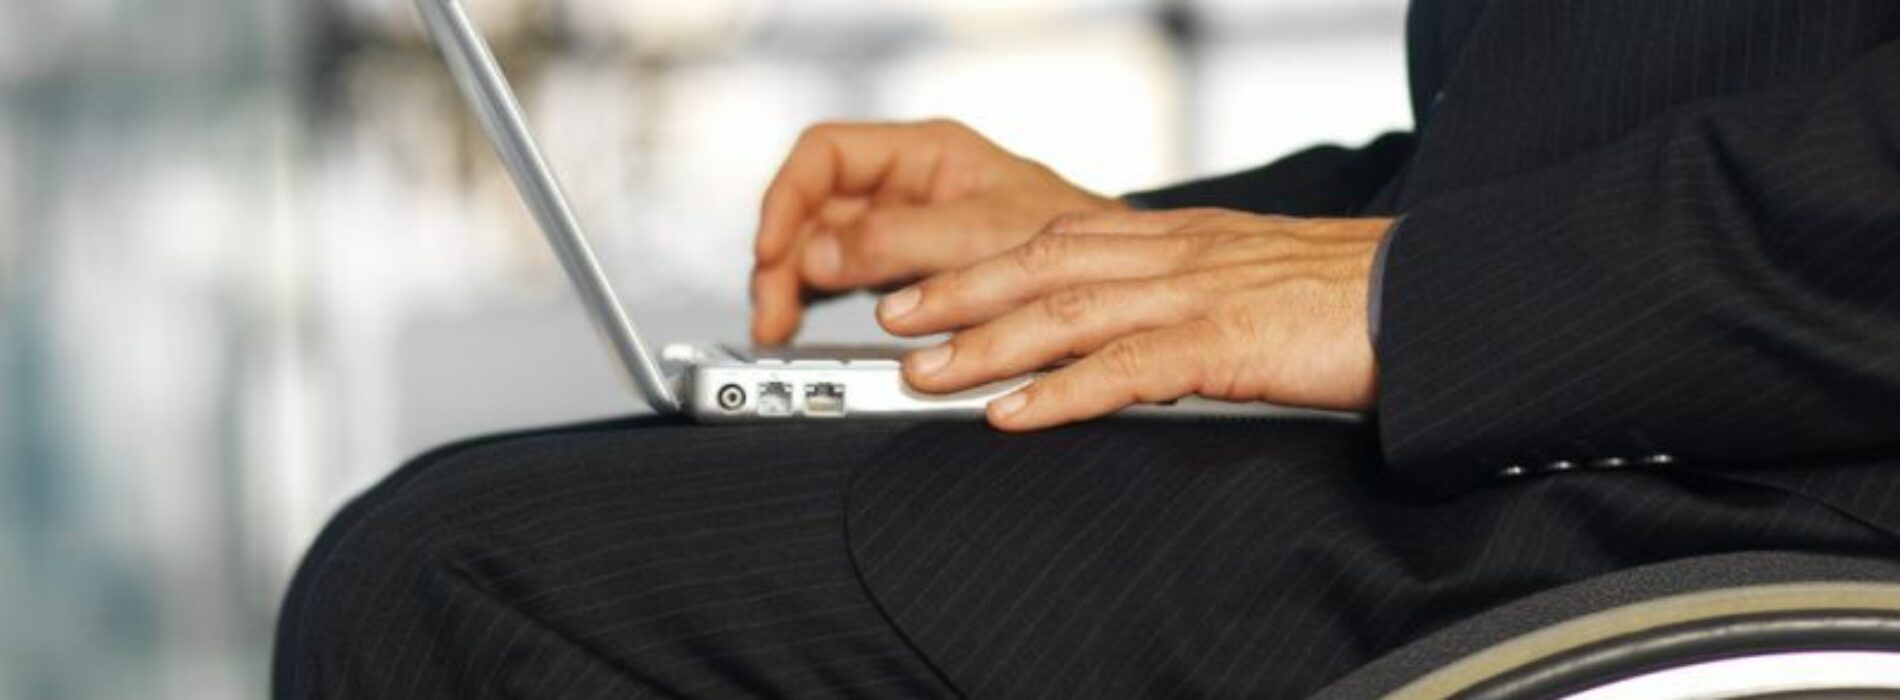 11% of business leaders are apprehensive about recruiting disabled people to senior positions